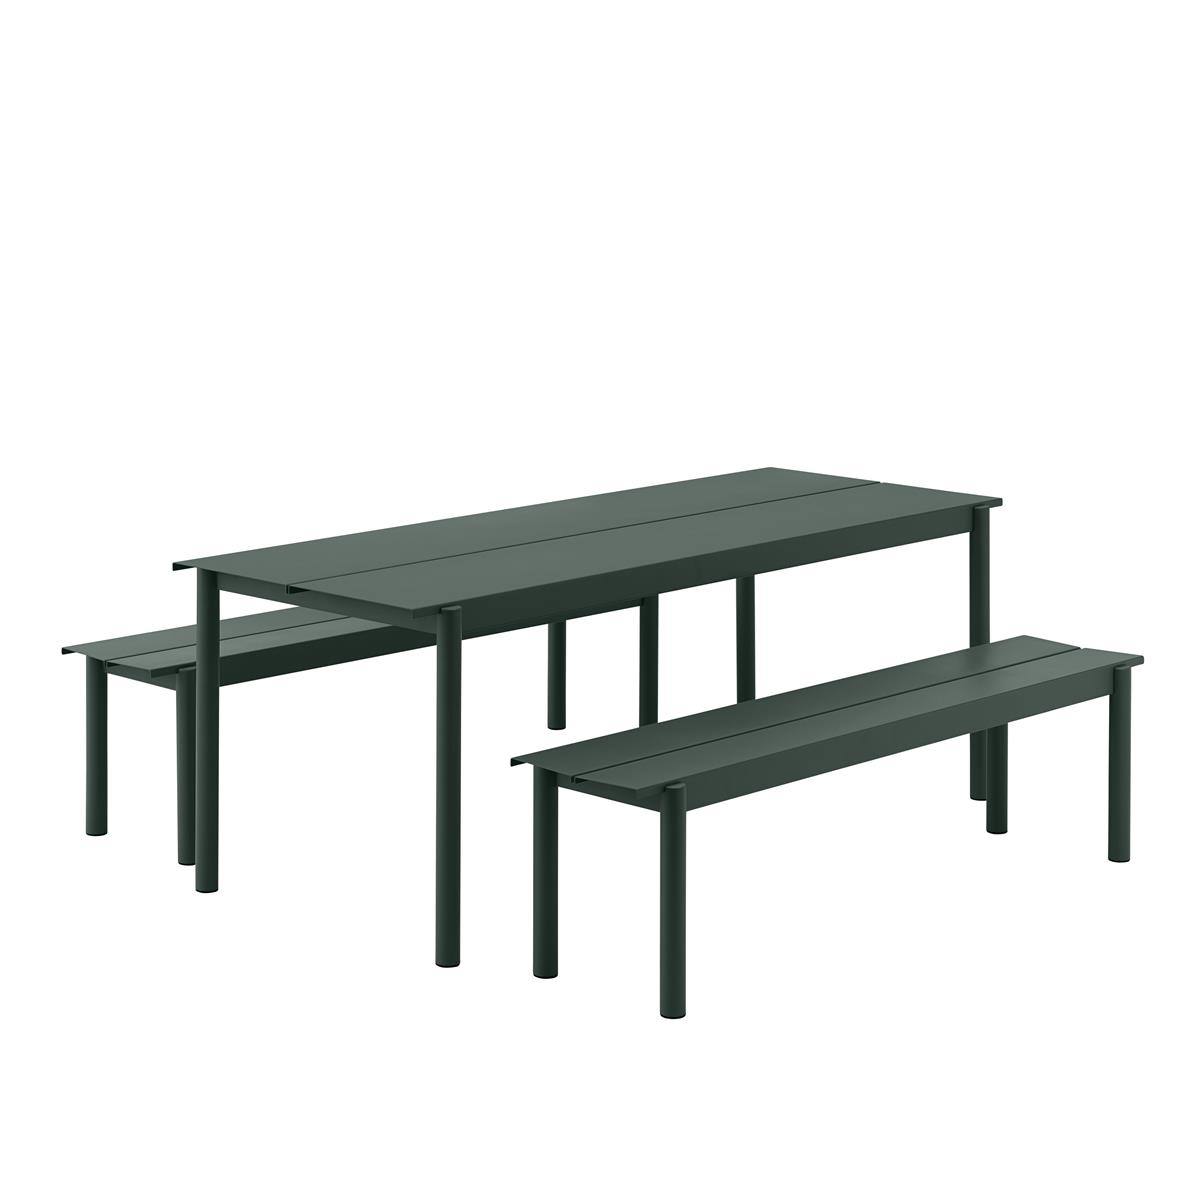 Linear Steel Table 200 x 75 med 2 Stk. Linear Steel Bench L:170. Dark Green.